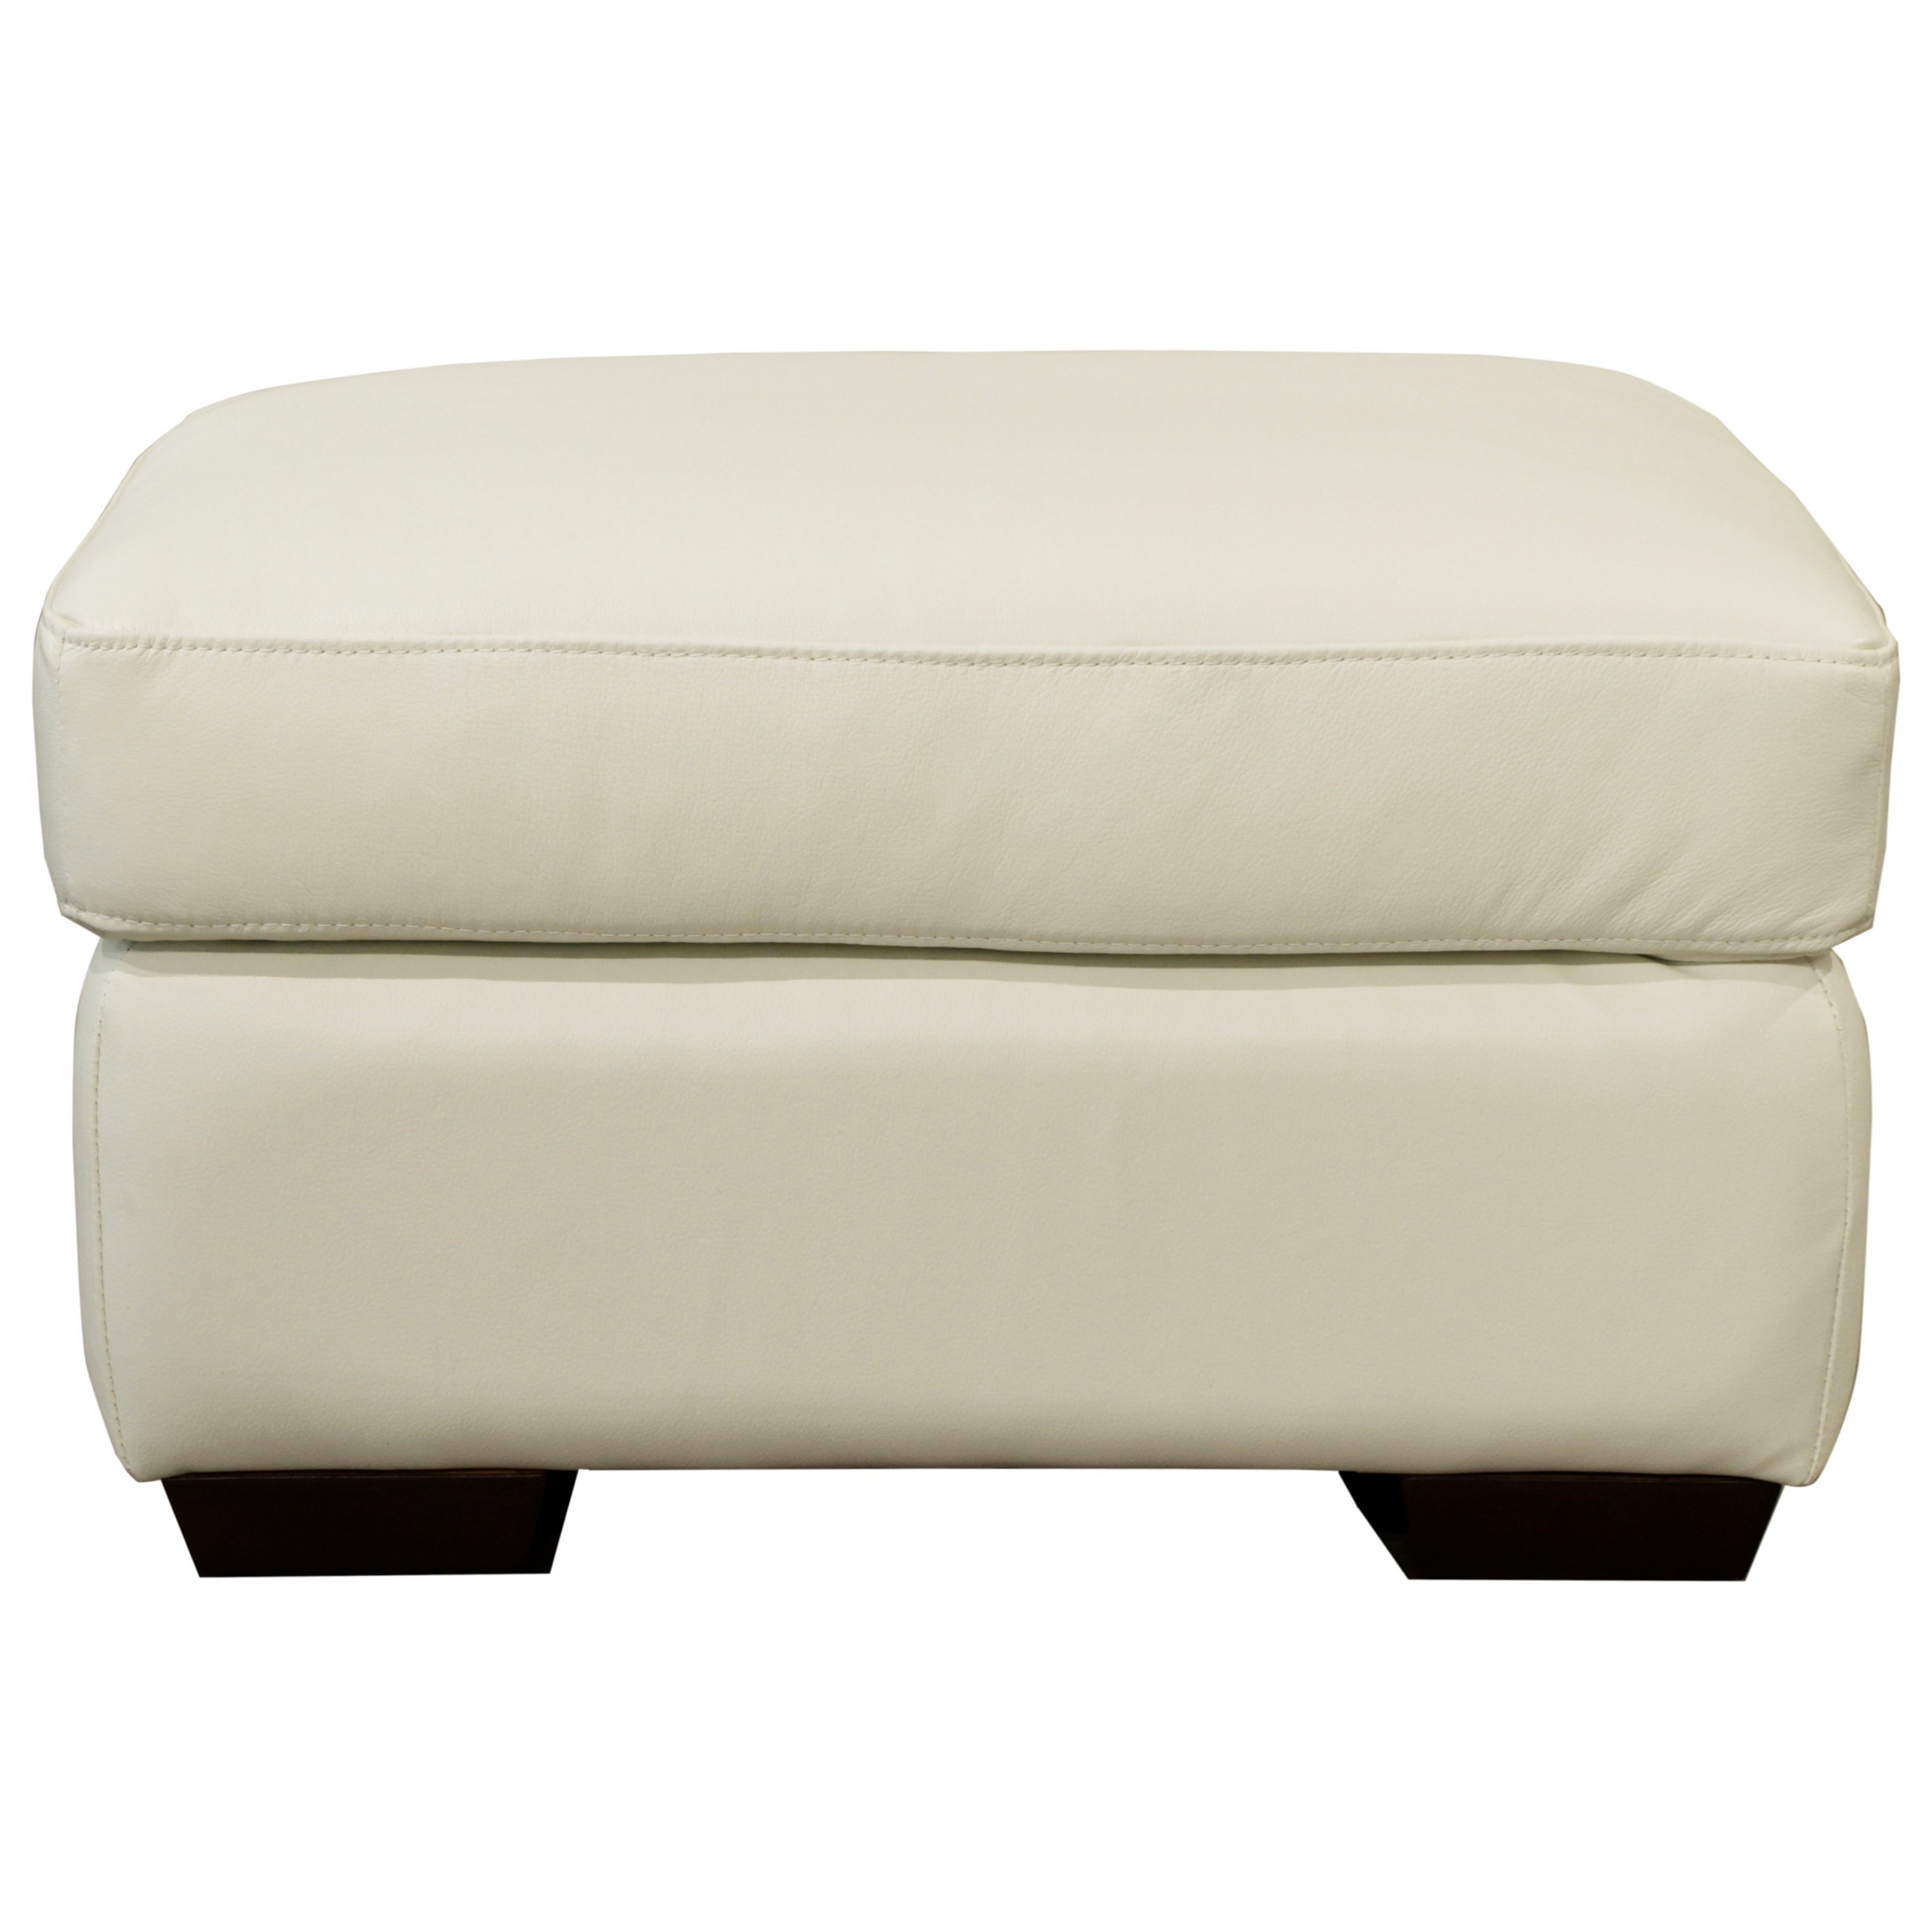 10131 Ottoman by Futura Leather at Baer's Furniture